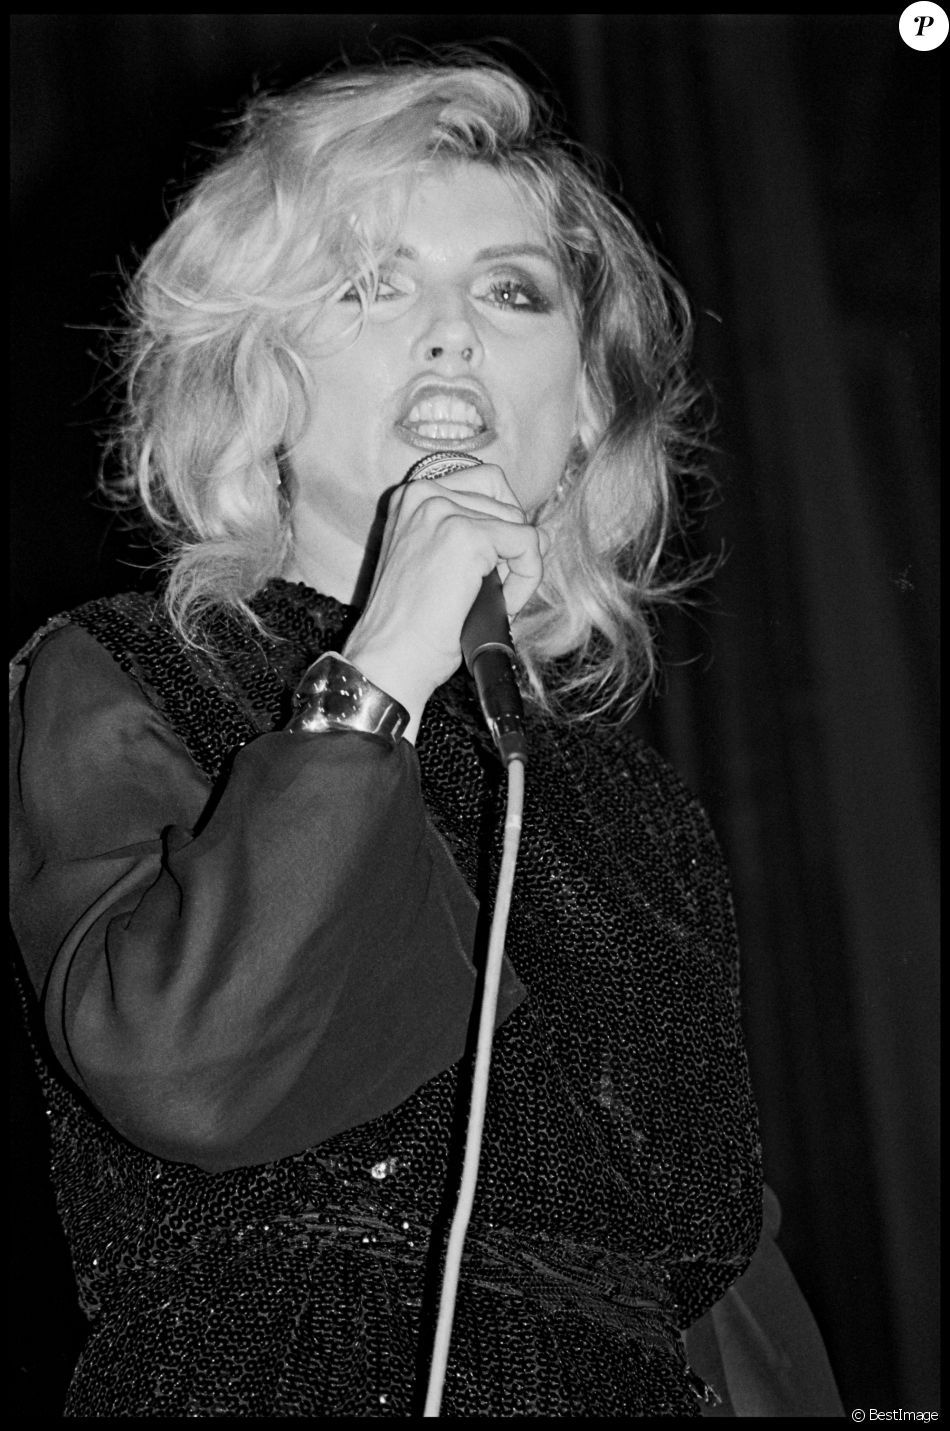 Pin By Johnny On Debbie Harry In 2020 Blondie Debbie Harry Debbie Harry Debbie